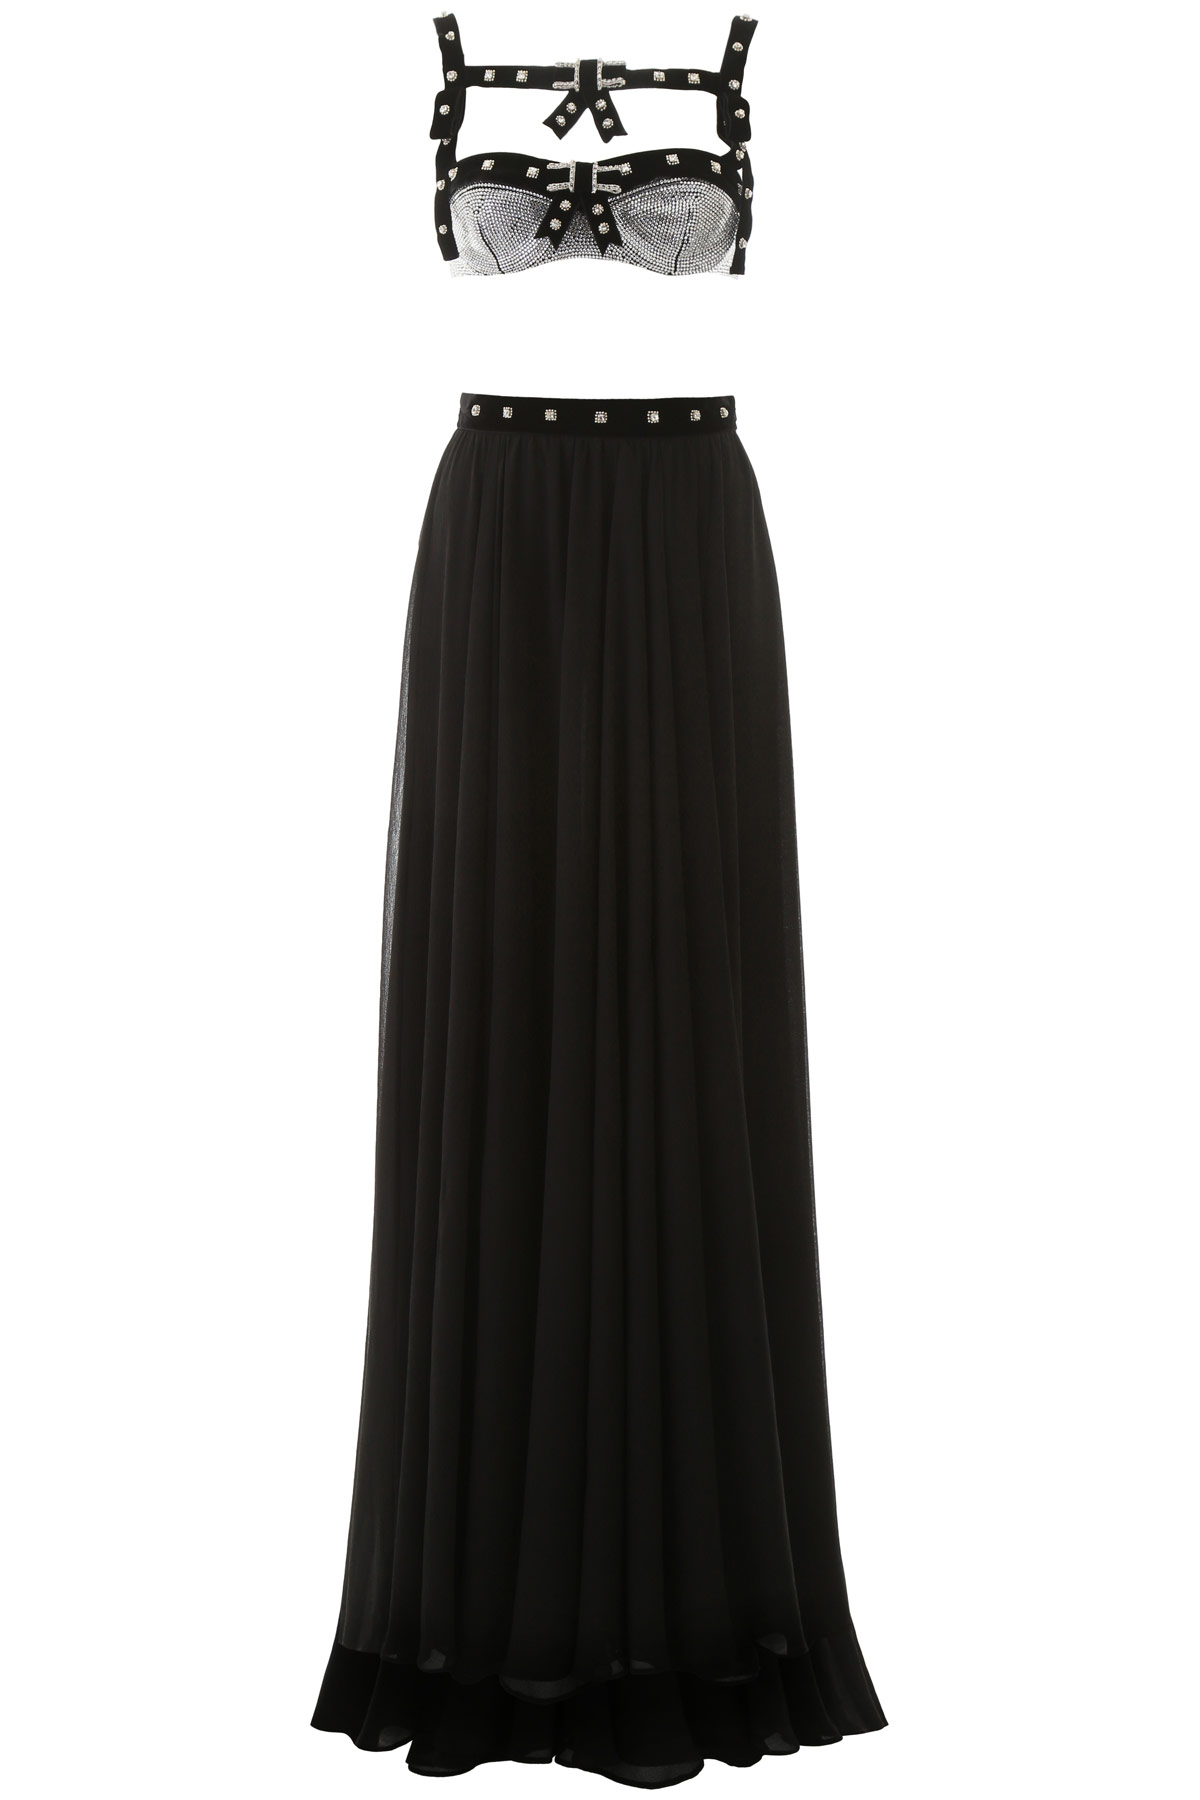 Philosophy Long Dress With Swarovski Crystals In Black